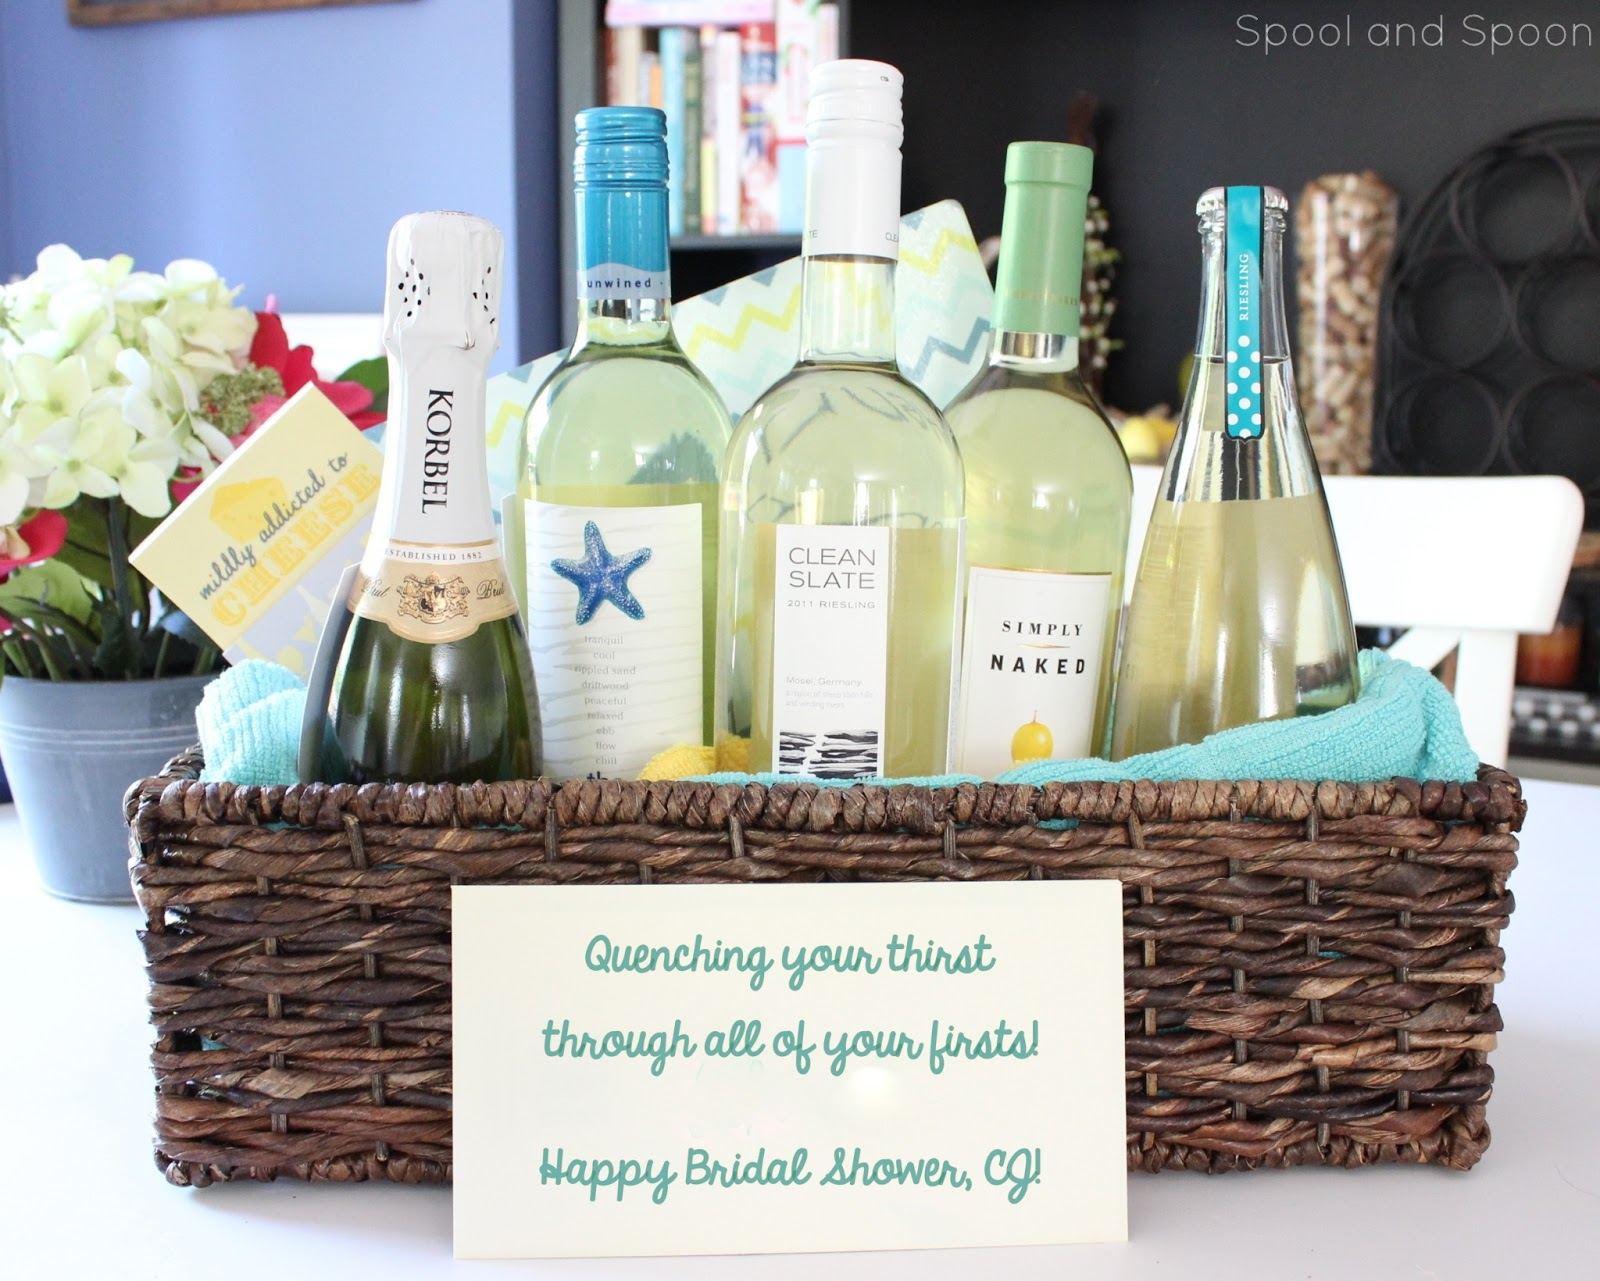 Bridal Shower Wine Gift Basket Ideas : ... All Of Your Firsts\ Wine Gift Basket (with Tags!) - 1600x1281 - jpeg